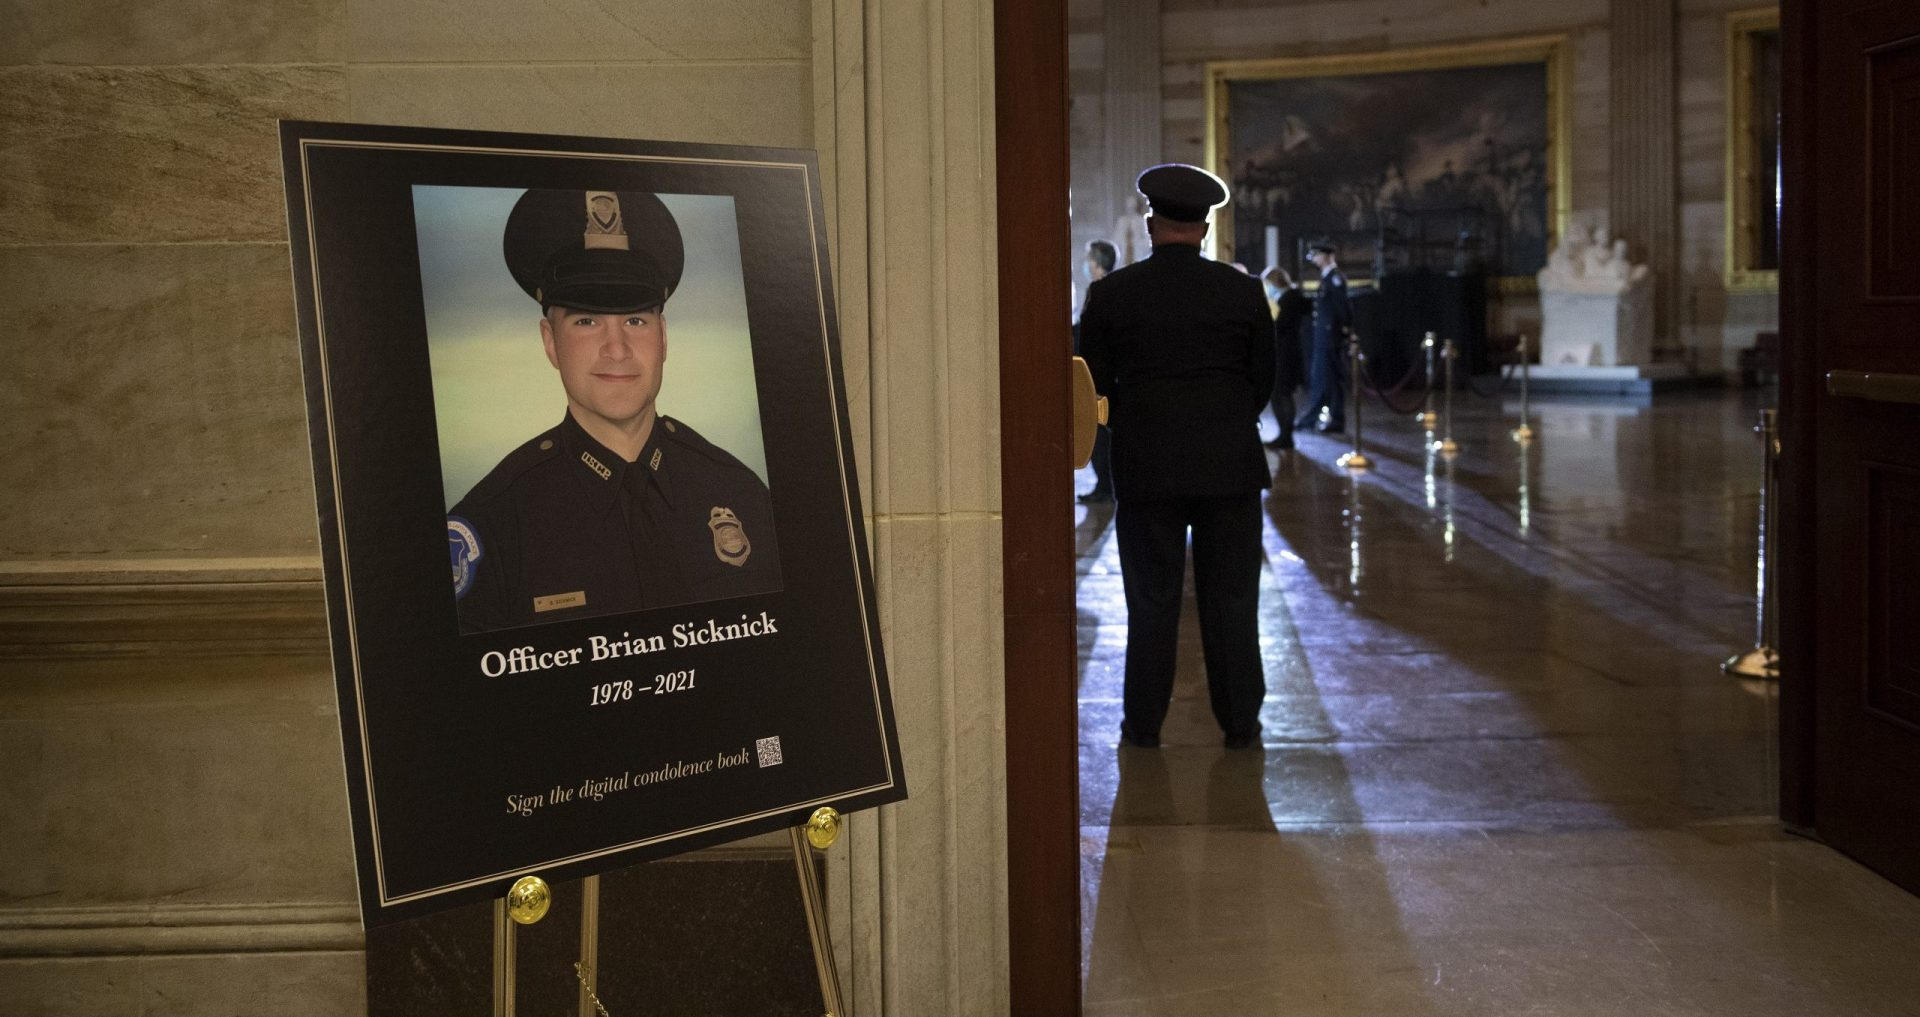 In this Feb. 2, 2021, file photo a placard is displayed with an image of the late U.S. Capitol Police officer Brian Sicknick on it as people wait for an urn with his cremated remains to be carried into the U.S. Capitol to lie in honor in the Capitol Rotunda in Washington.